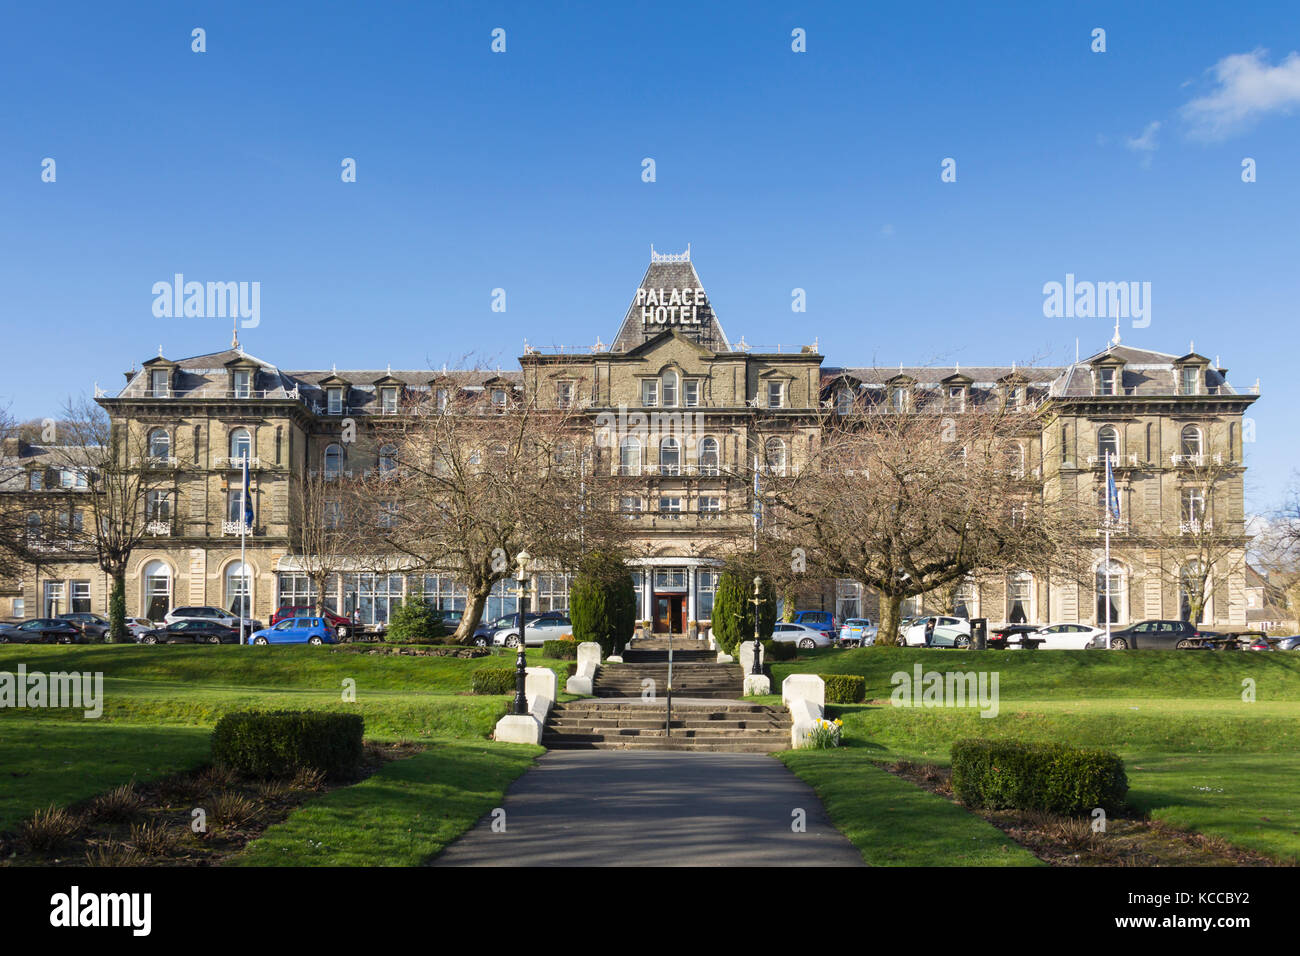 Palace Hotel In Buxton Derbyshire